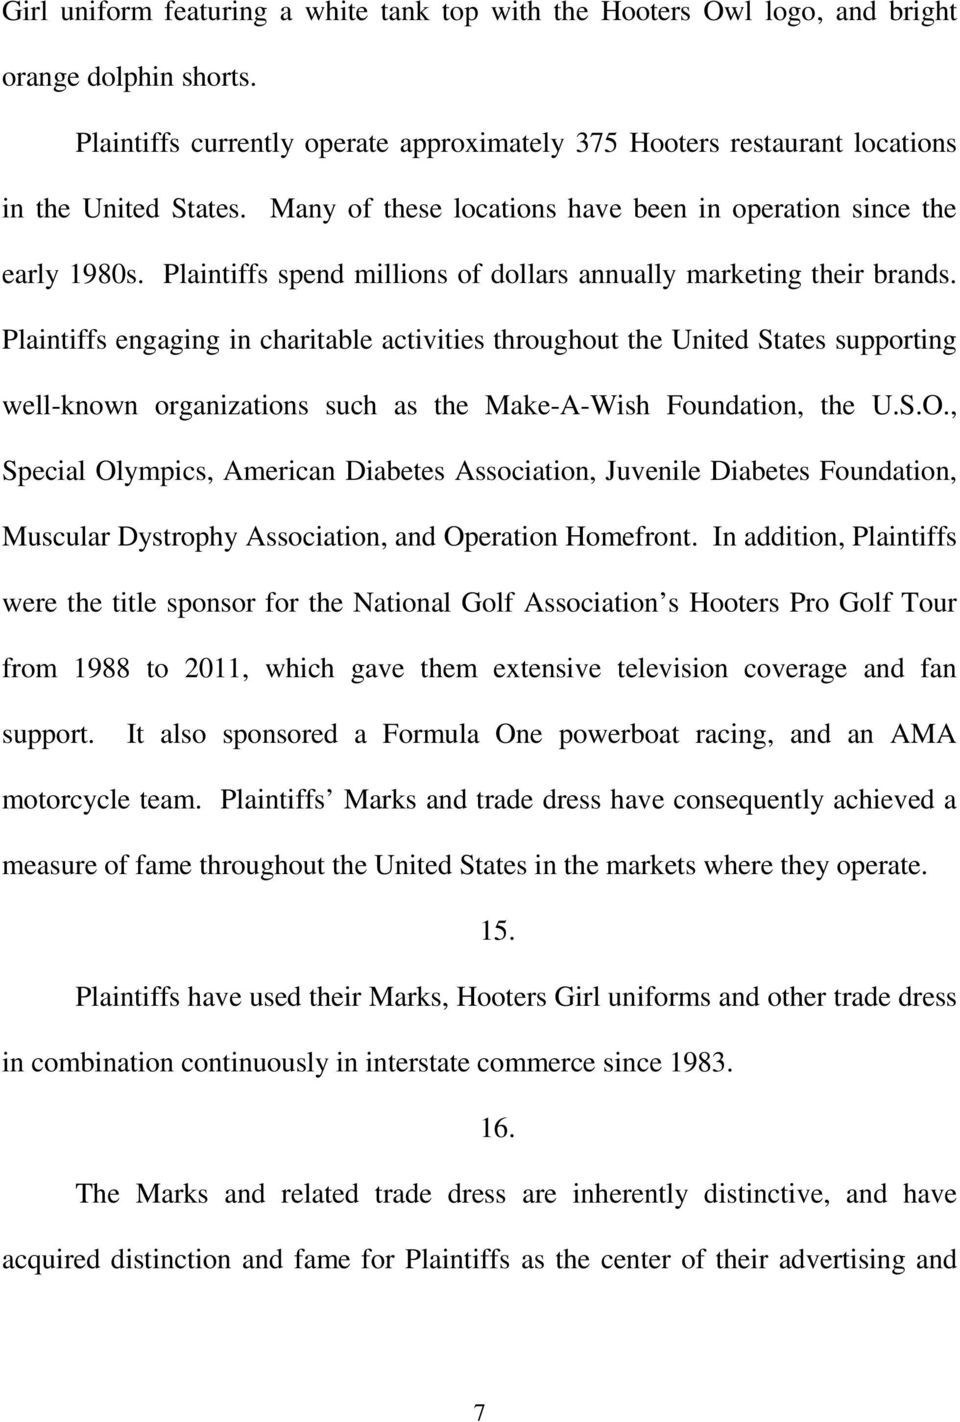 Plaintiffs engaging in charitable activities throughout the United States supporting well-known organizations such as the Make-A-Wish Foundation, the U.S.O.